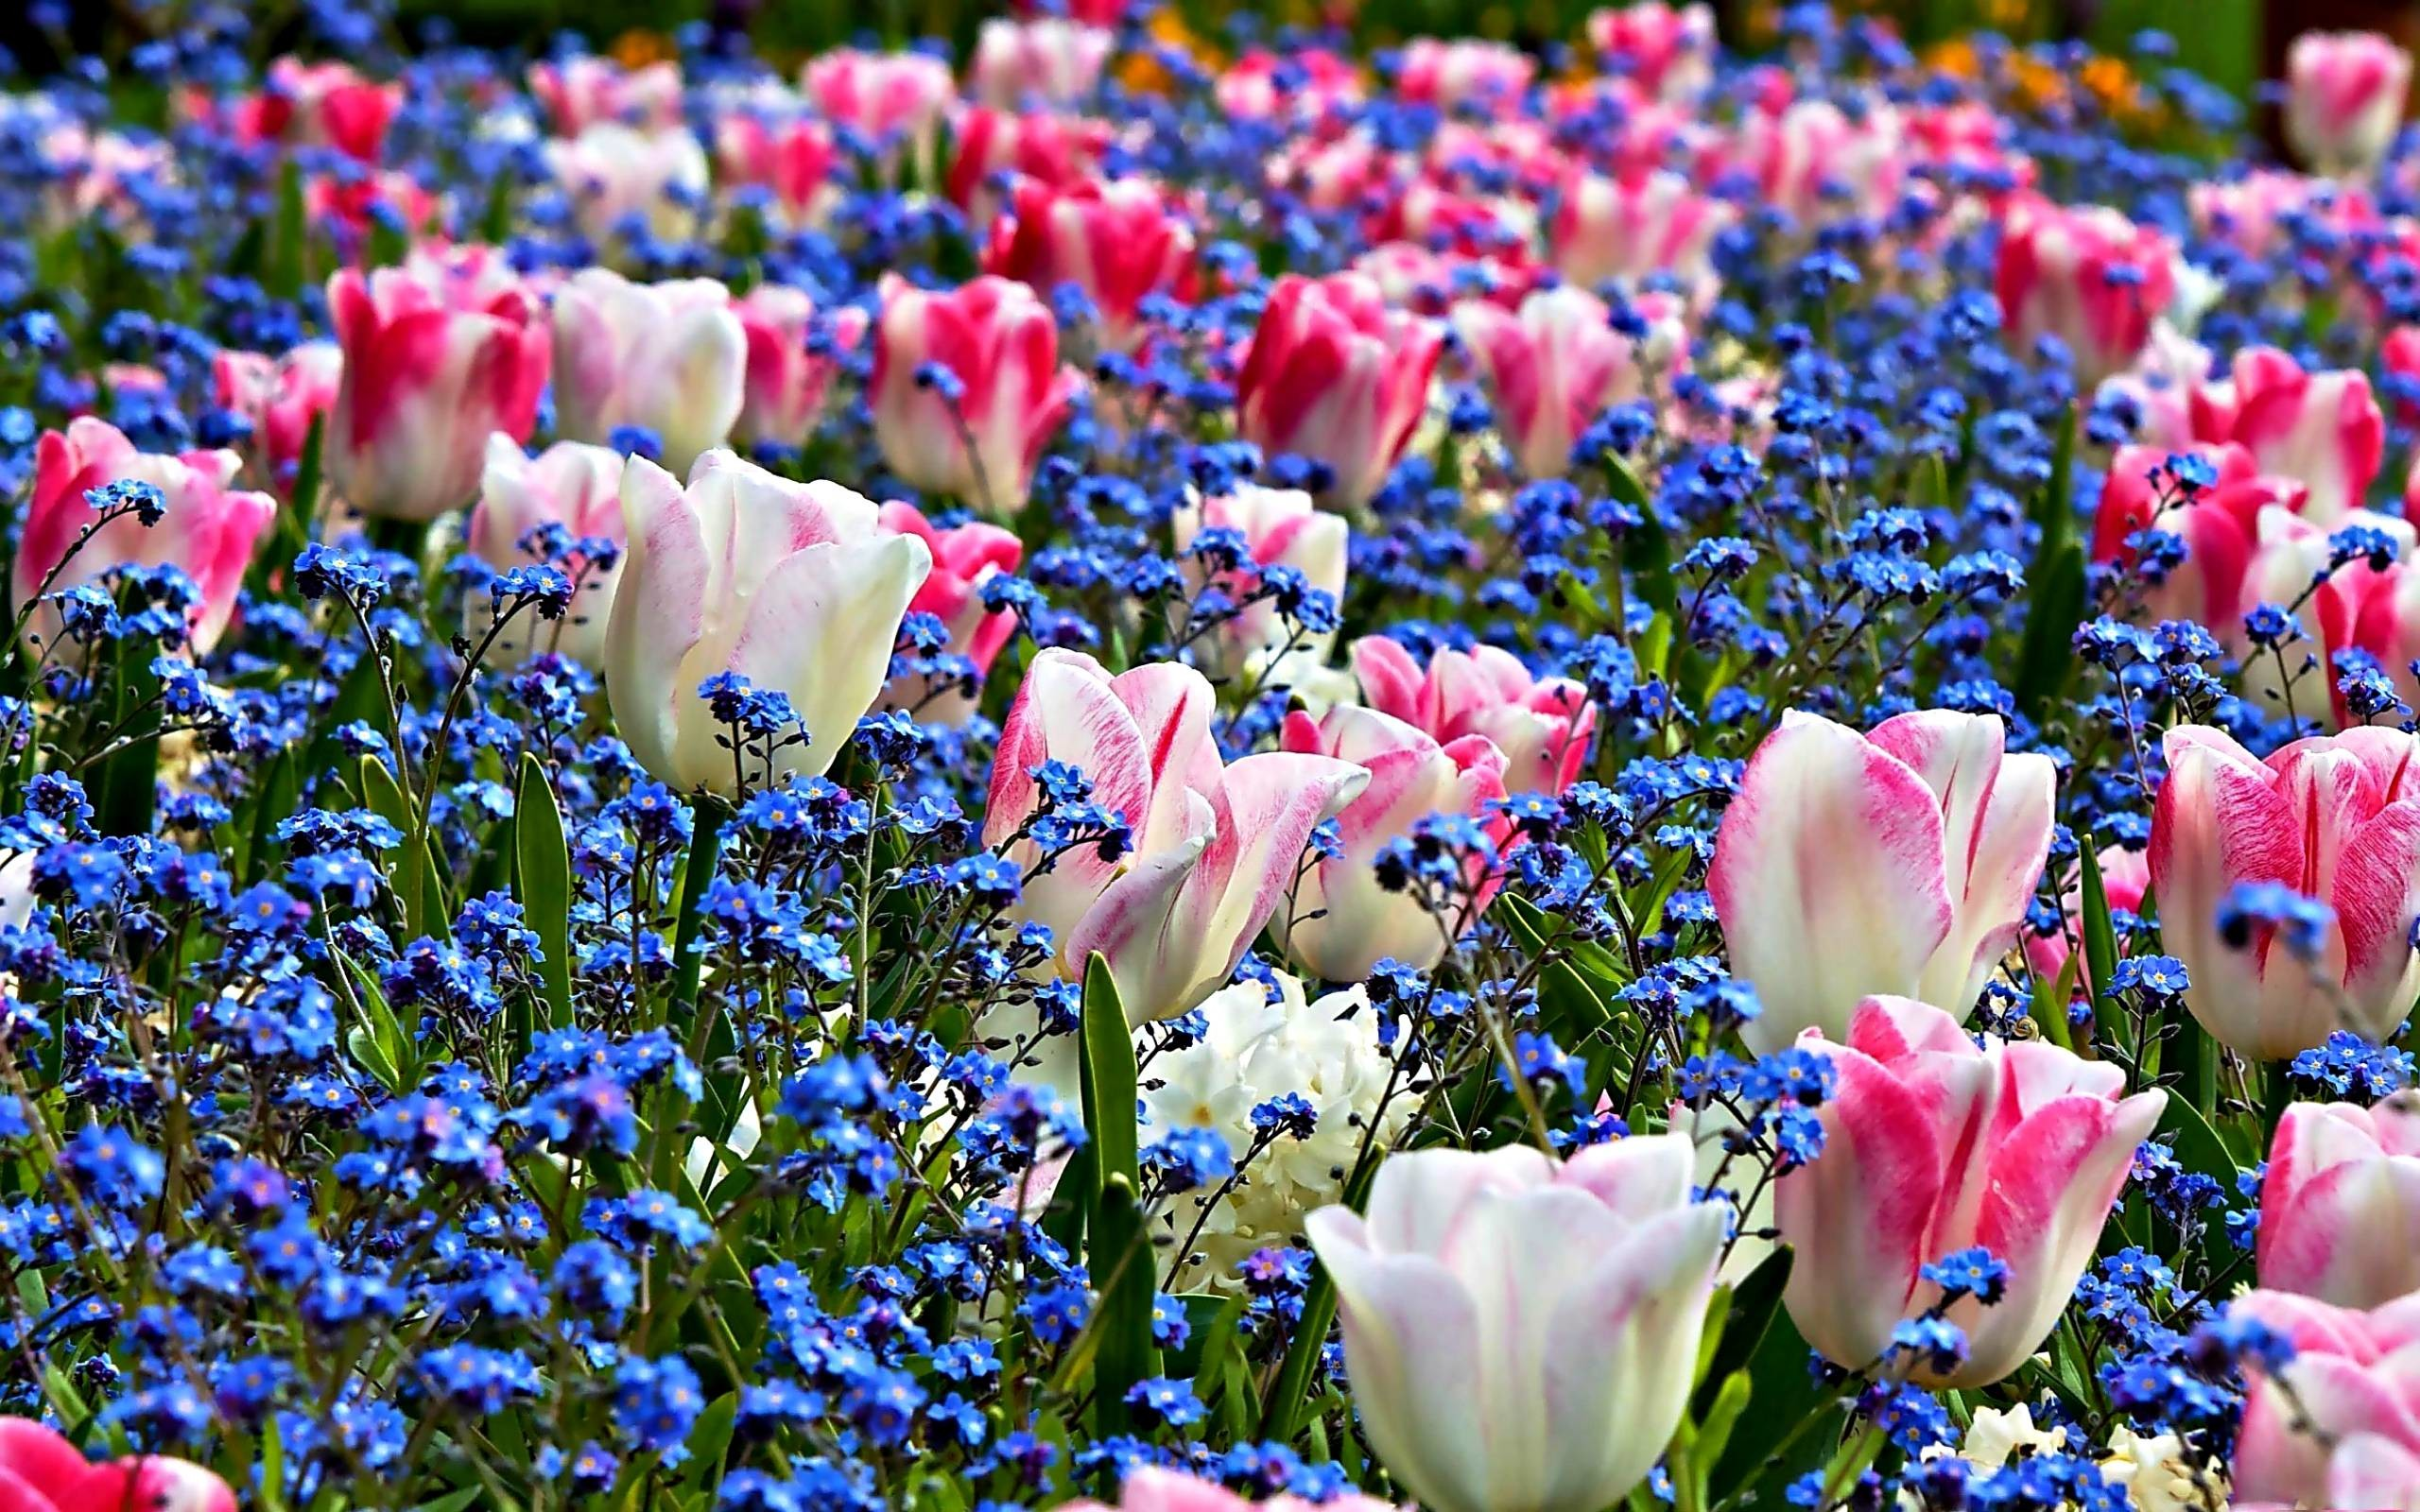 Desktop wallpaper spring flowers 2560x1600 spring flowers images desktop wallpaper timedoll download free mightylinksfo